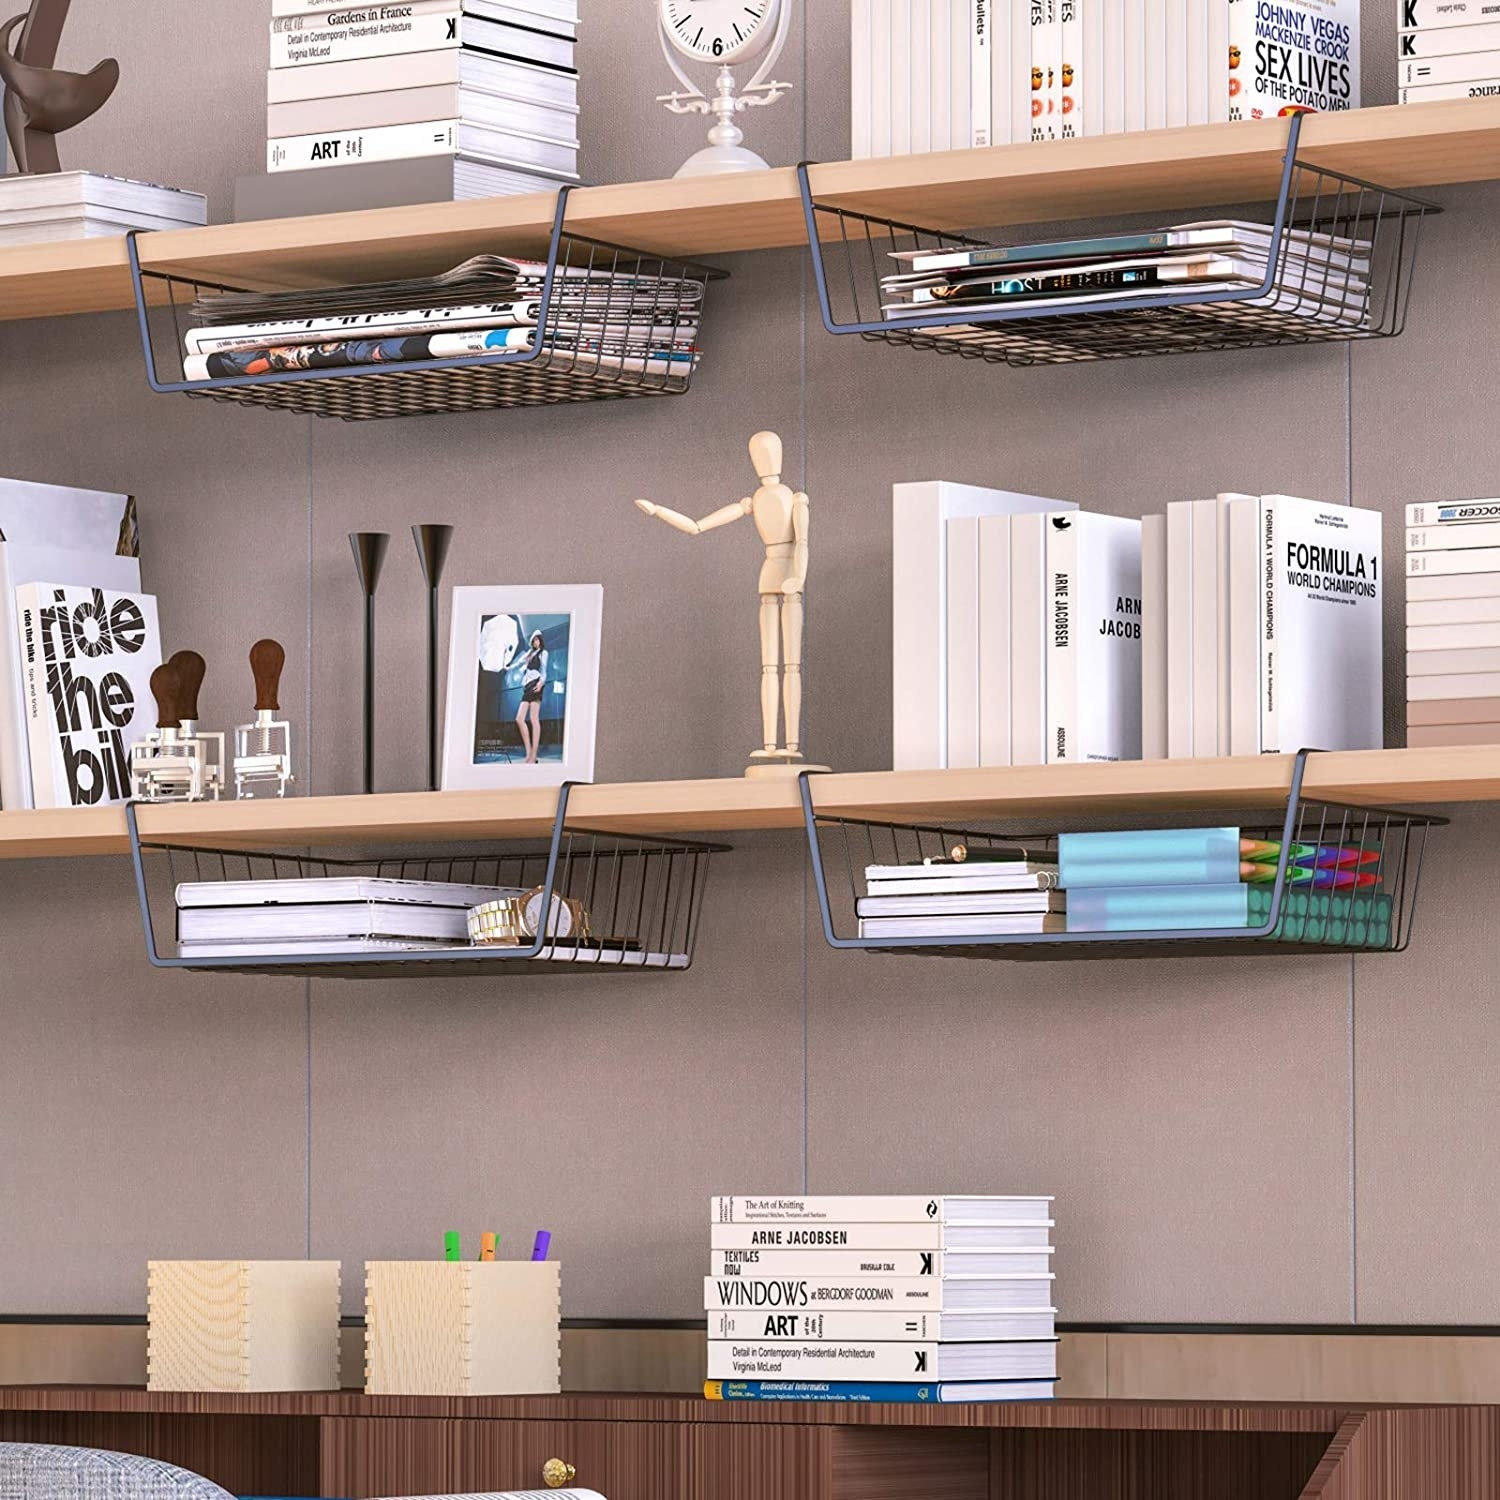 The baskets holding notebooks and stationery and hanging under a bookshelf